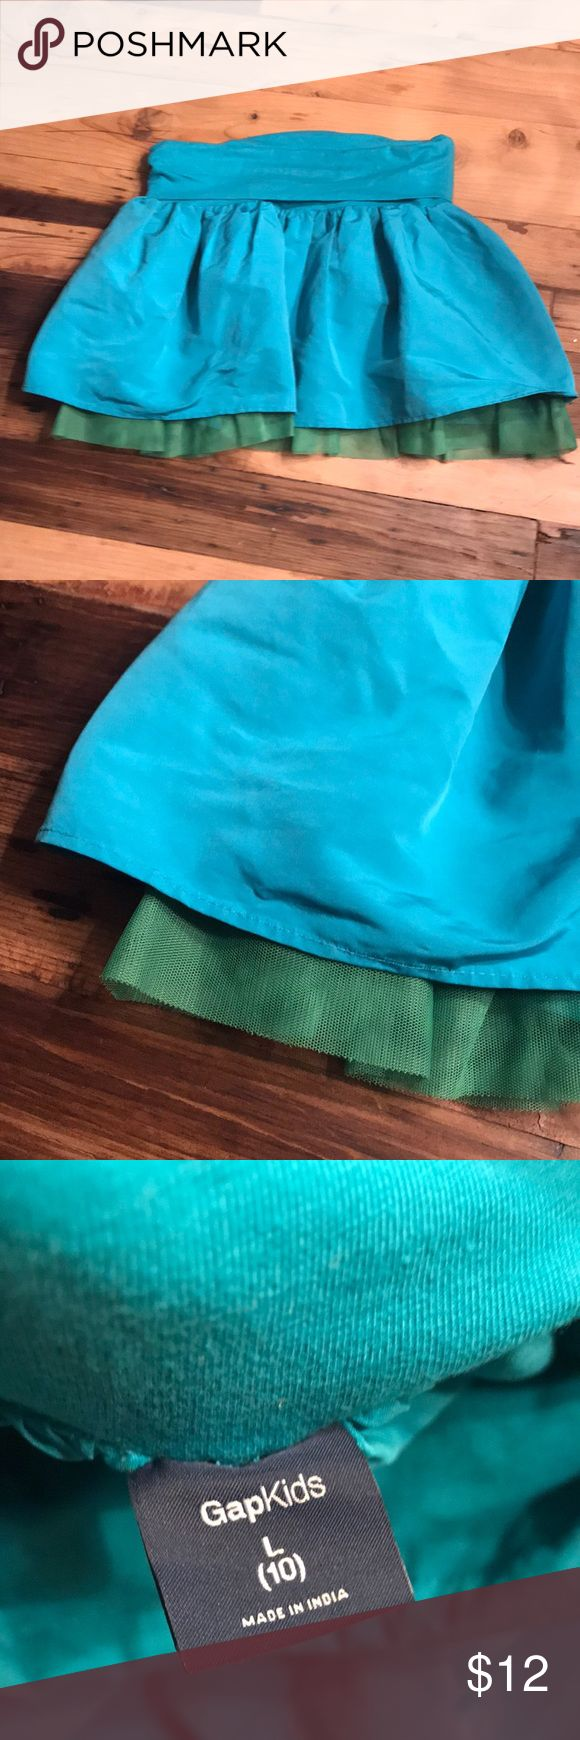 Gap skirt turquoise and green Large Gap Kids Taffeta like material with a peek of green tulle at the bottom. Waist is a stretch cotton to add to comfort. GAP Bottoms Skirts